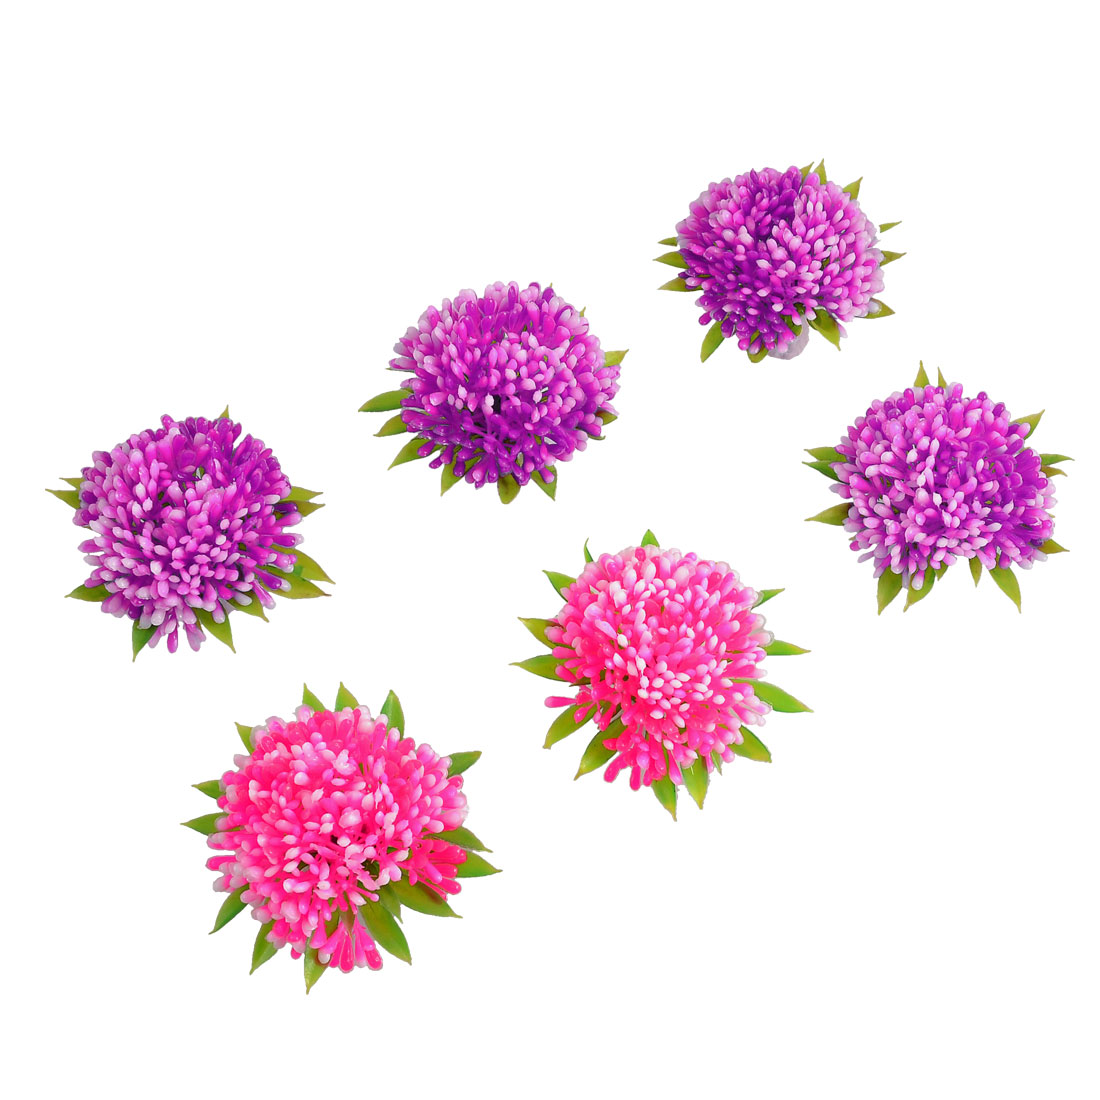 6 Pcs Emulational Fuchsia Pink Plastic Plant Aquarium Decor Ornament 2.2""